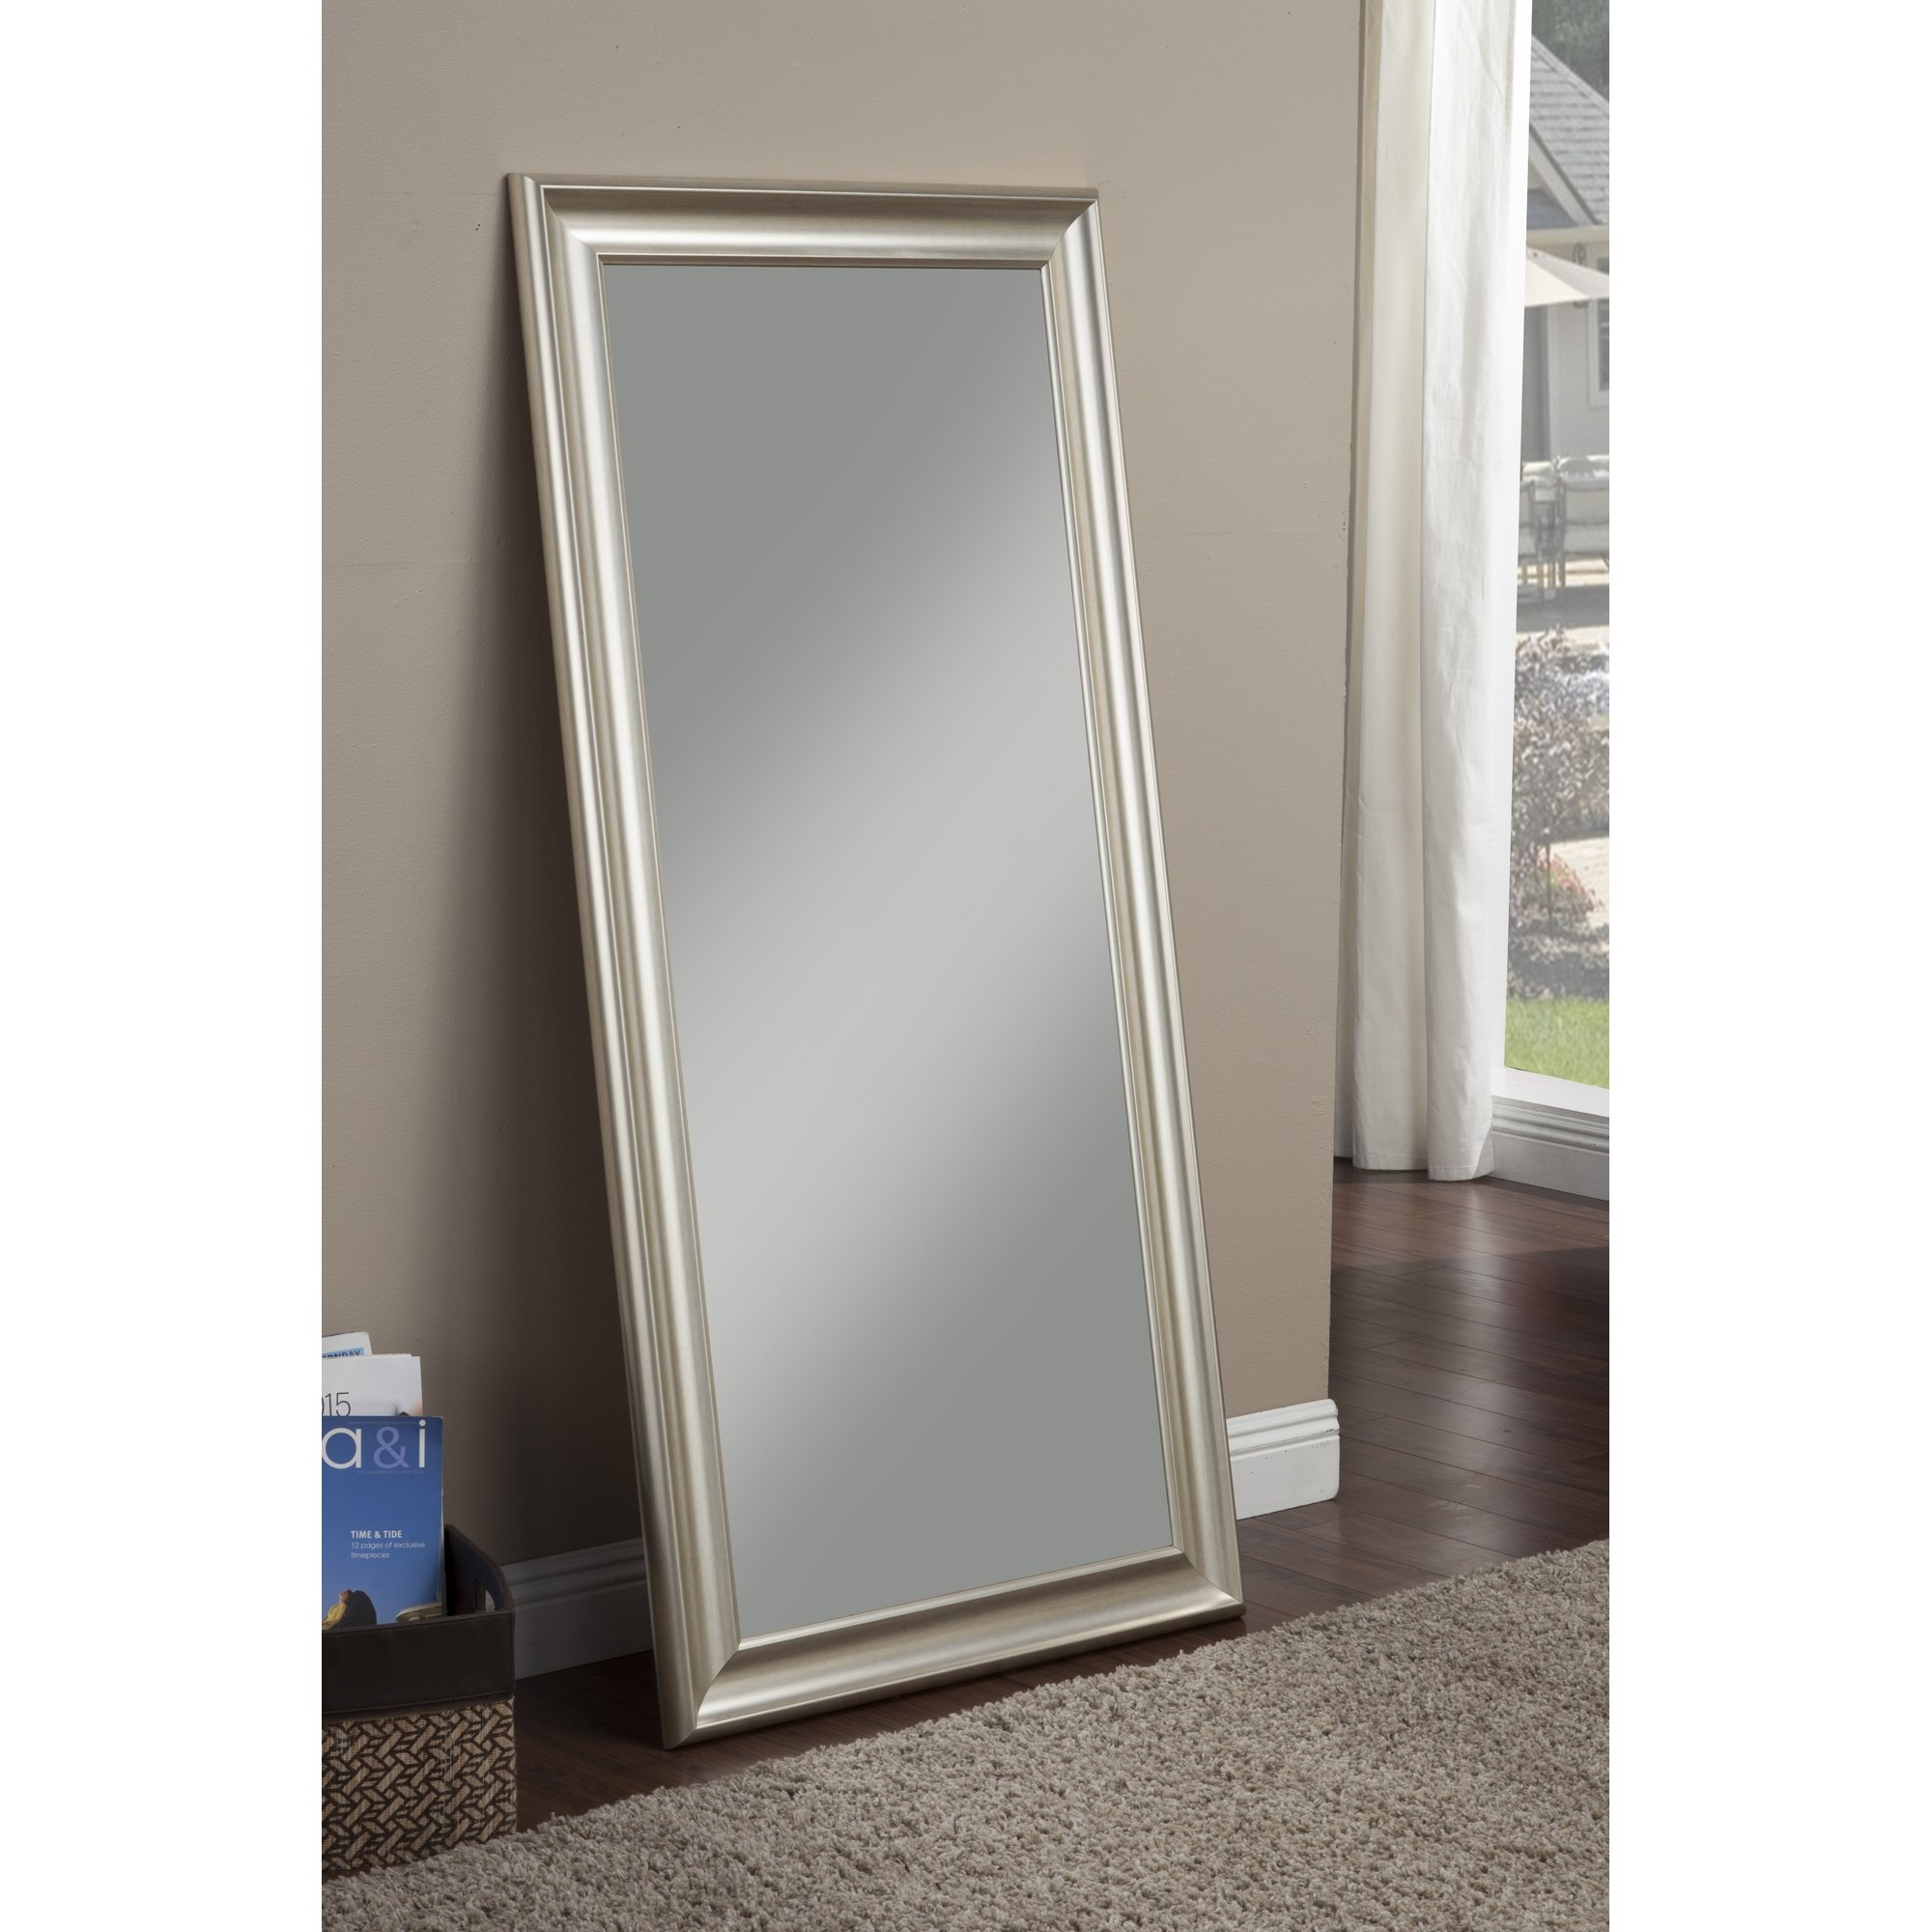 Willa Arlo Interiors Modern Full Length Leaning Mirror Reviews Regarding Silver Full Length Mirror (Image 15 of 15)